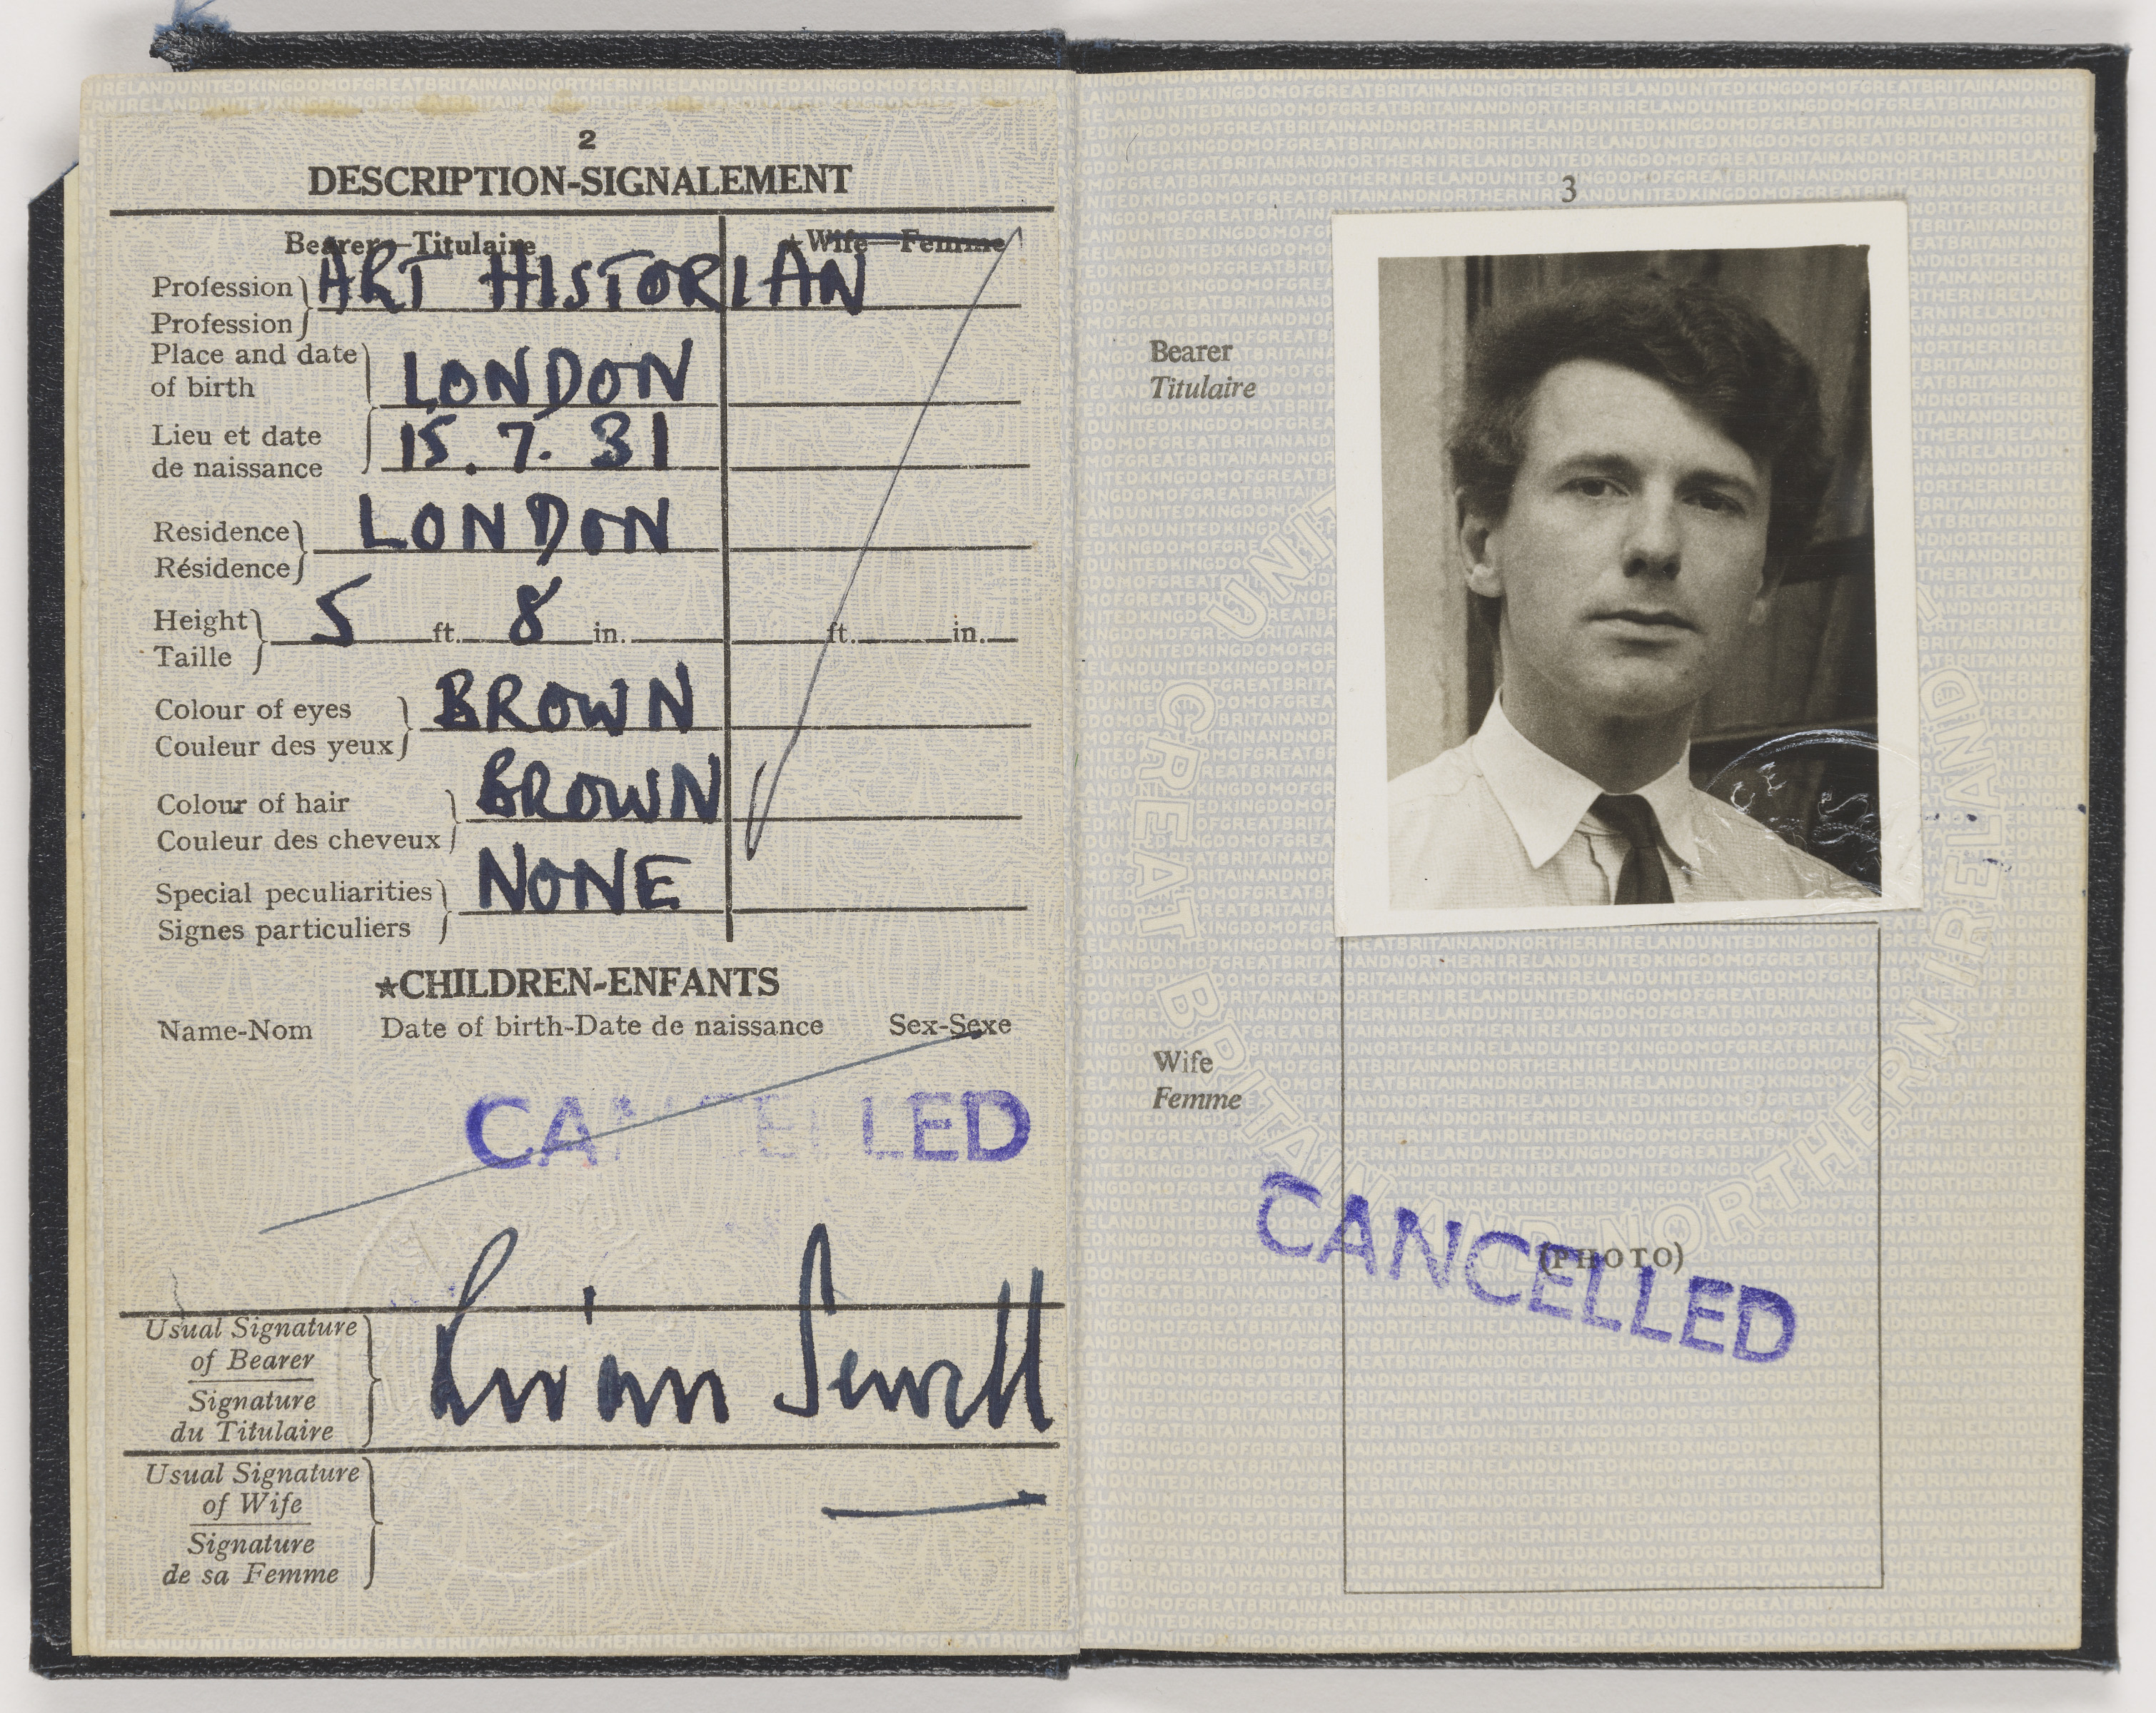 Scan of Brian Sewell's passport with portrait photograph on right page